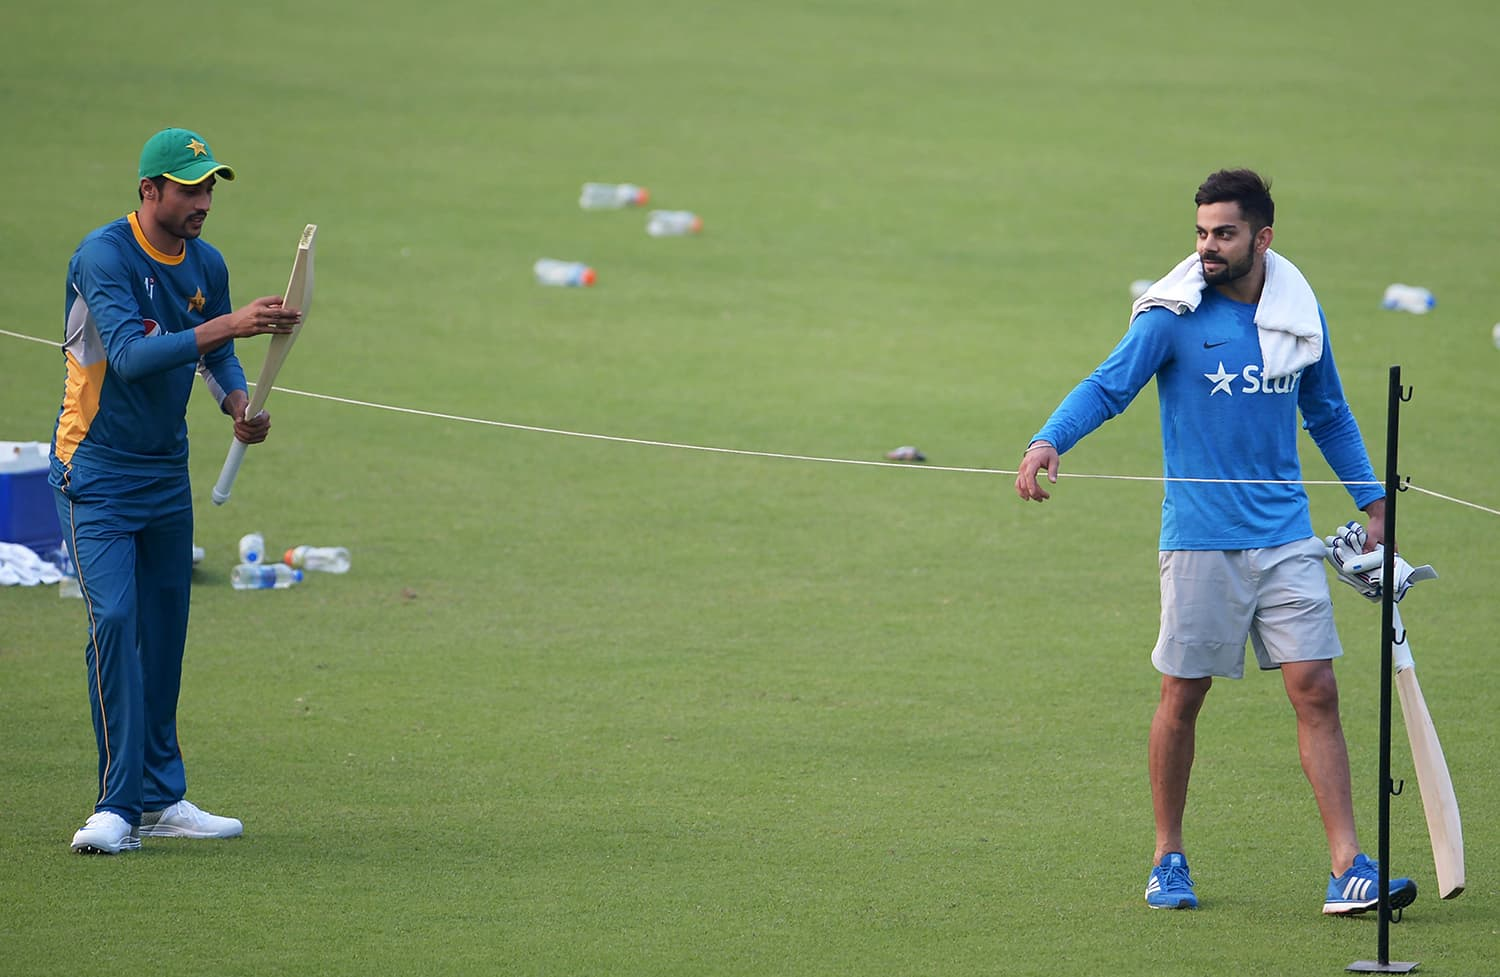 Amir checks a bat after he received it from Kohli at The Eden Gardens in Kolkata. — AFP